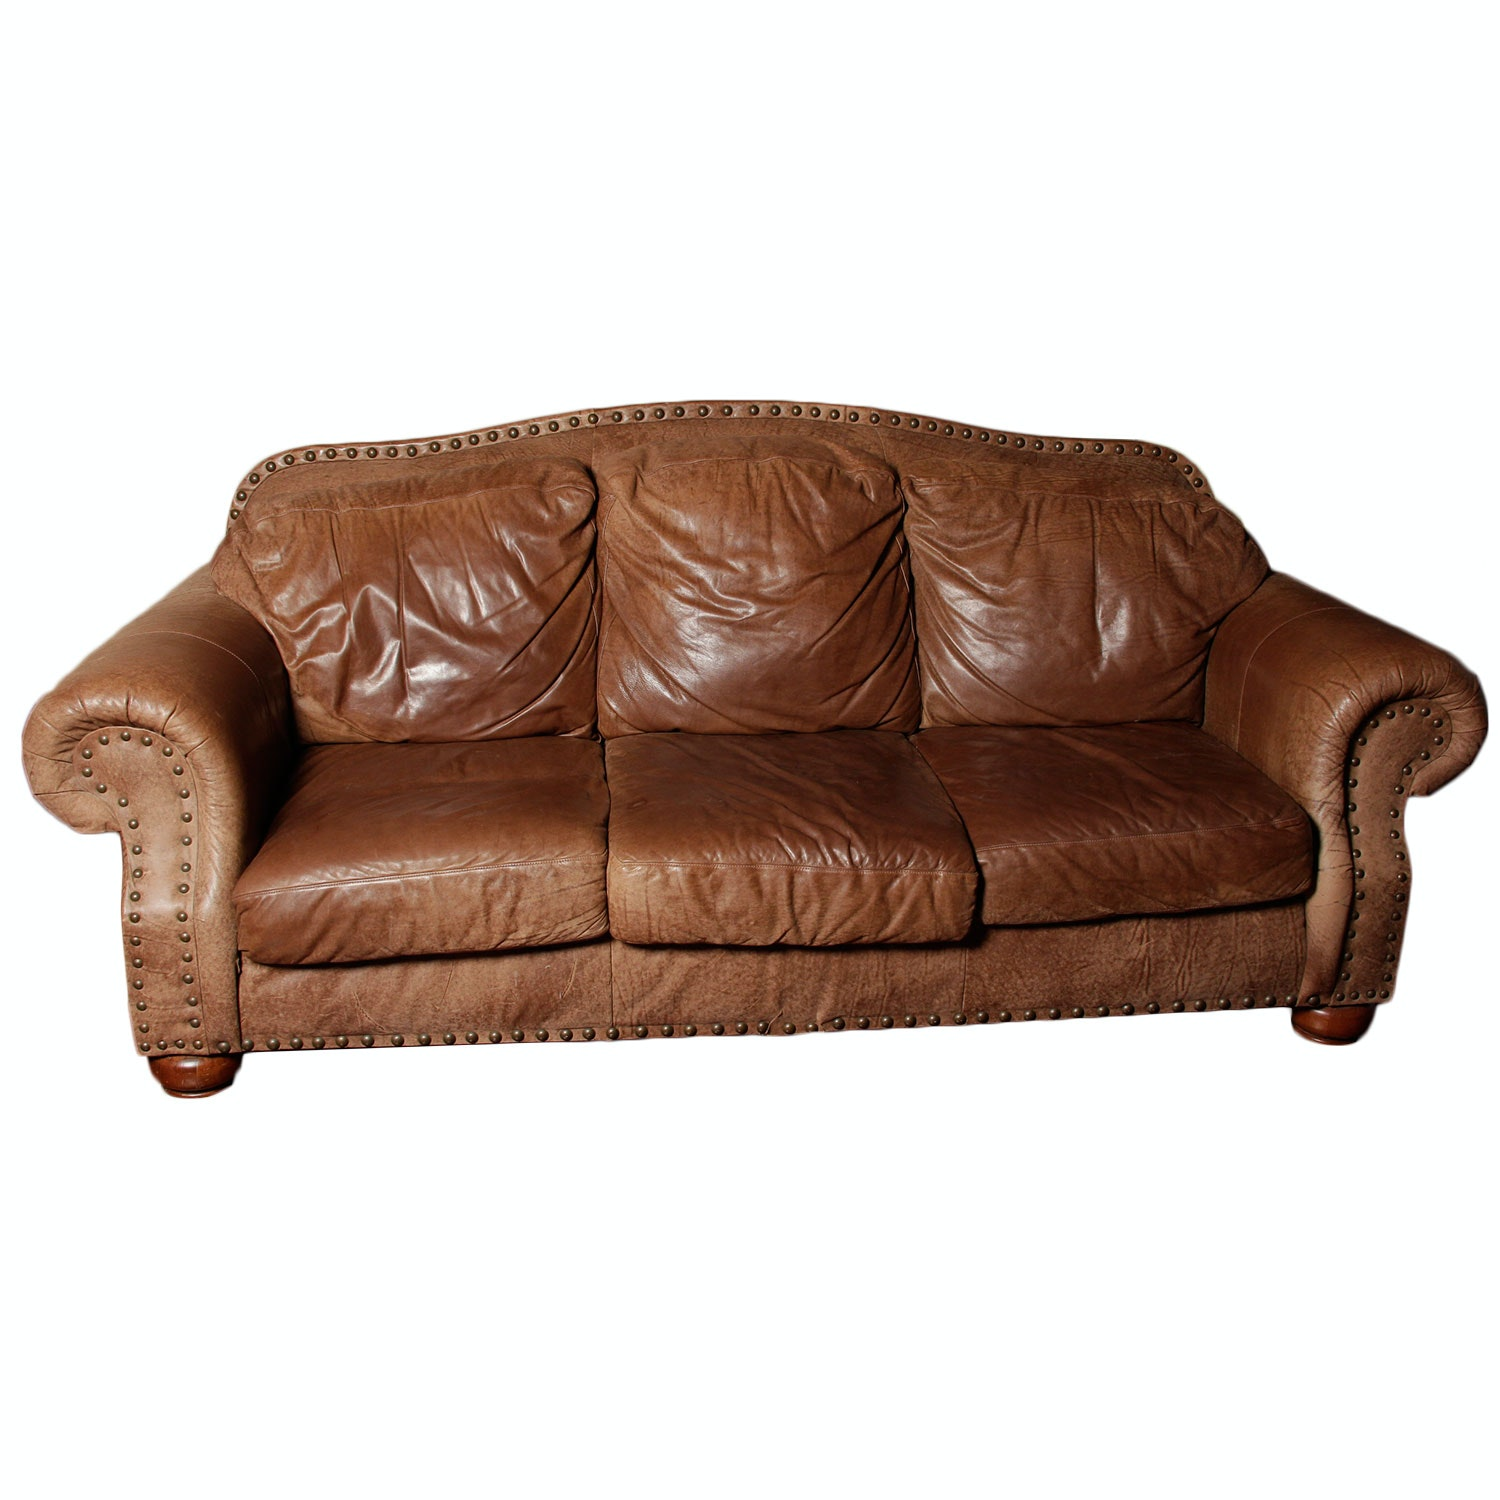 Flexsteel Nubuck Leather Couch : Ebth